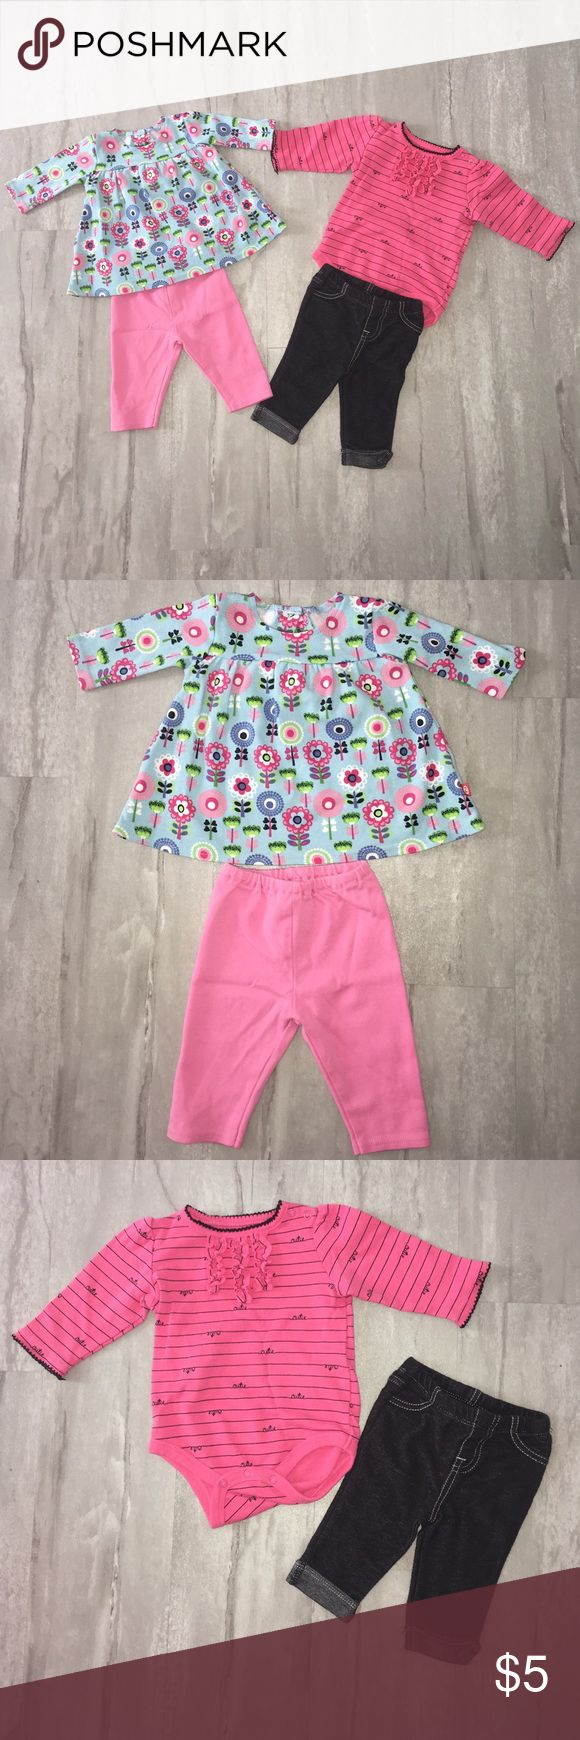 """0-3 month matching sets. Outfit on the left has pink pants with a blue with pink flower design top. The top is flowy. This outfit is Zutano Itzy Bitzy brand and is sized at 3 months. Excellent condition.  The outfit on the right is a pink onesie with matching jeggins. The onesie has ruffle detail on the front and black stripes with the word """"cutie."""" This outfit is the brand Small Wonders and is sized 0-3 months. This outfit was worn once and is in excellent condition. Zutano Matching Sets"""